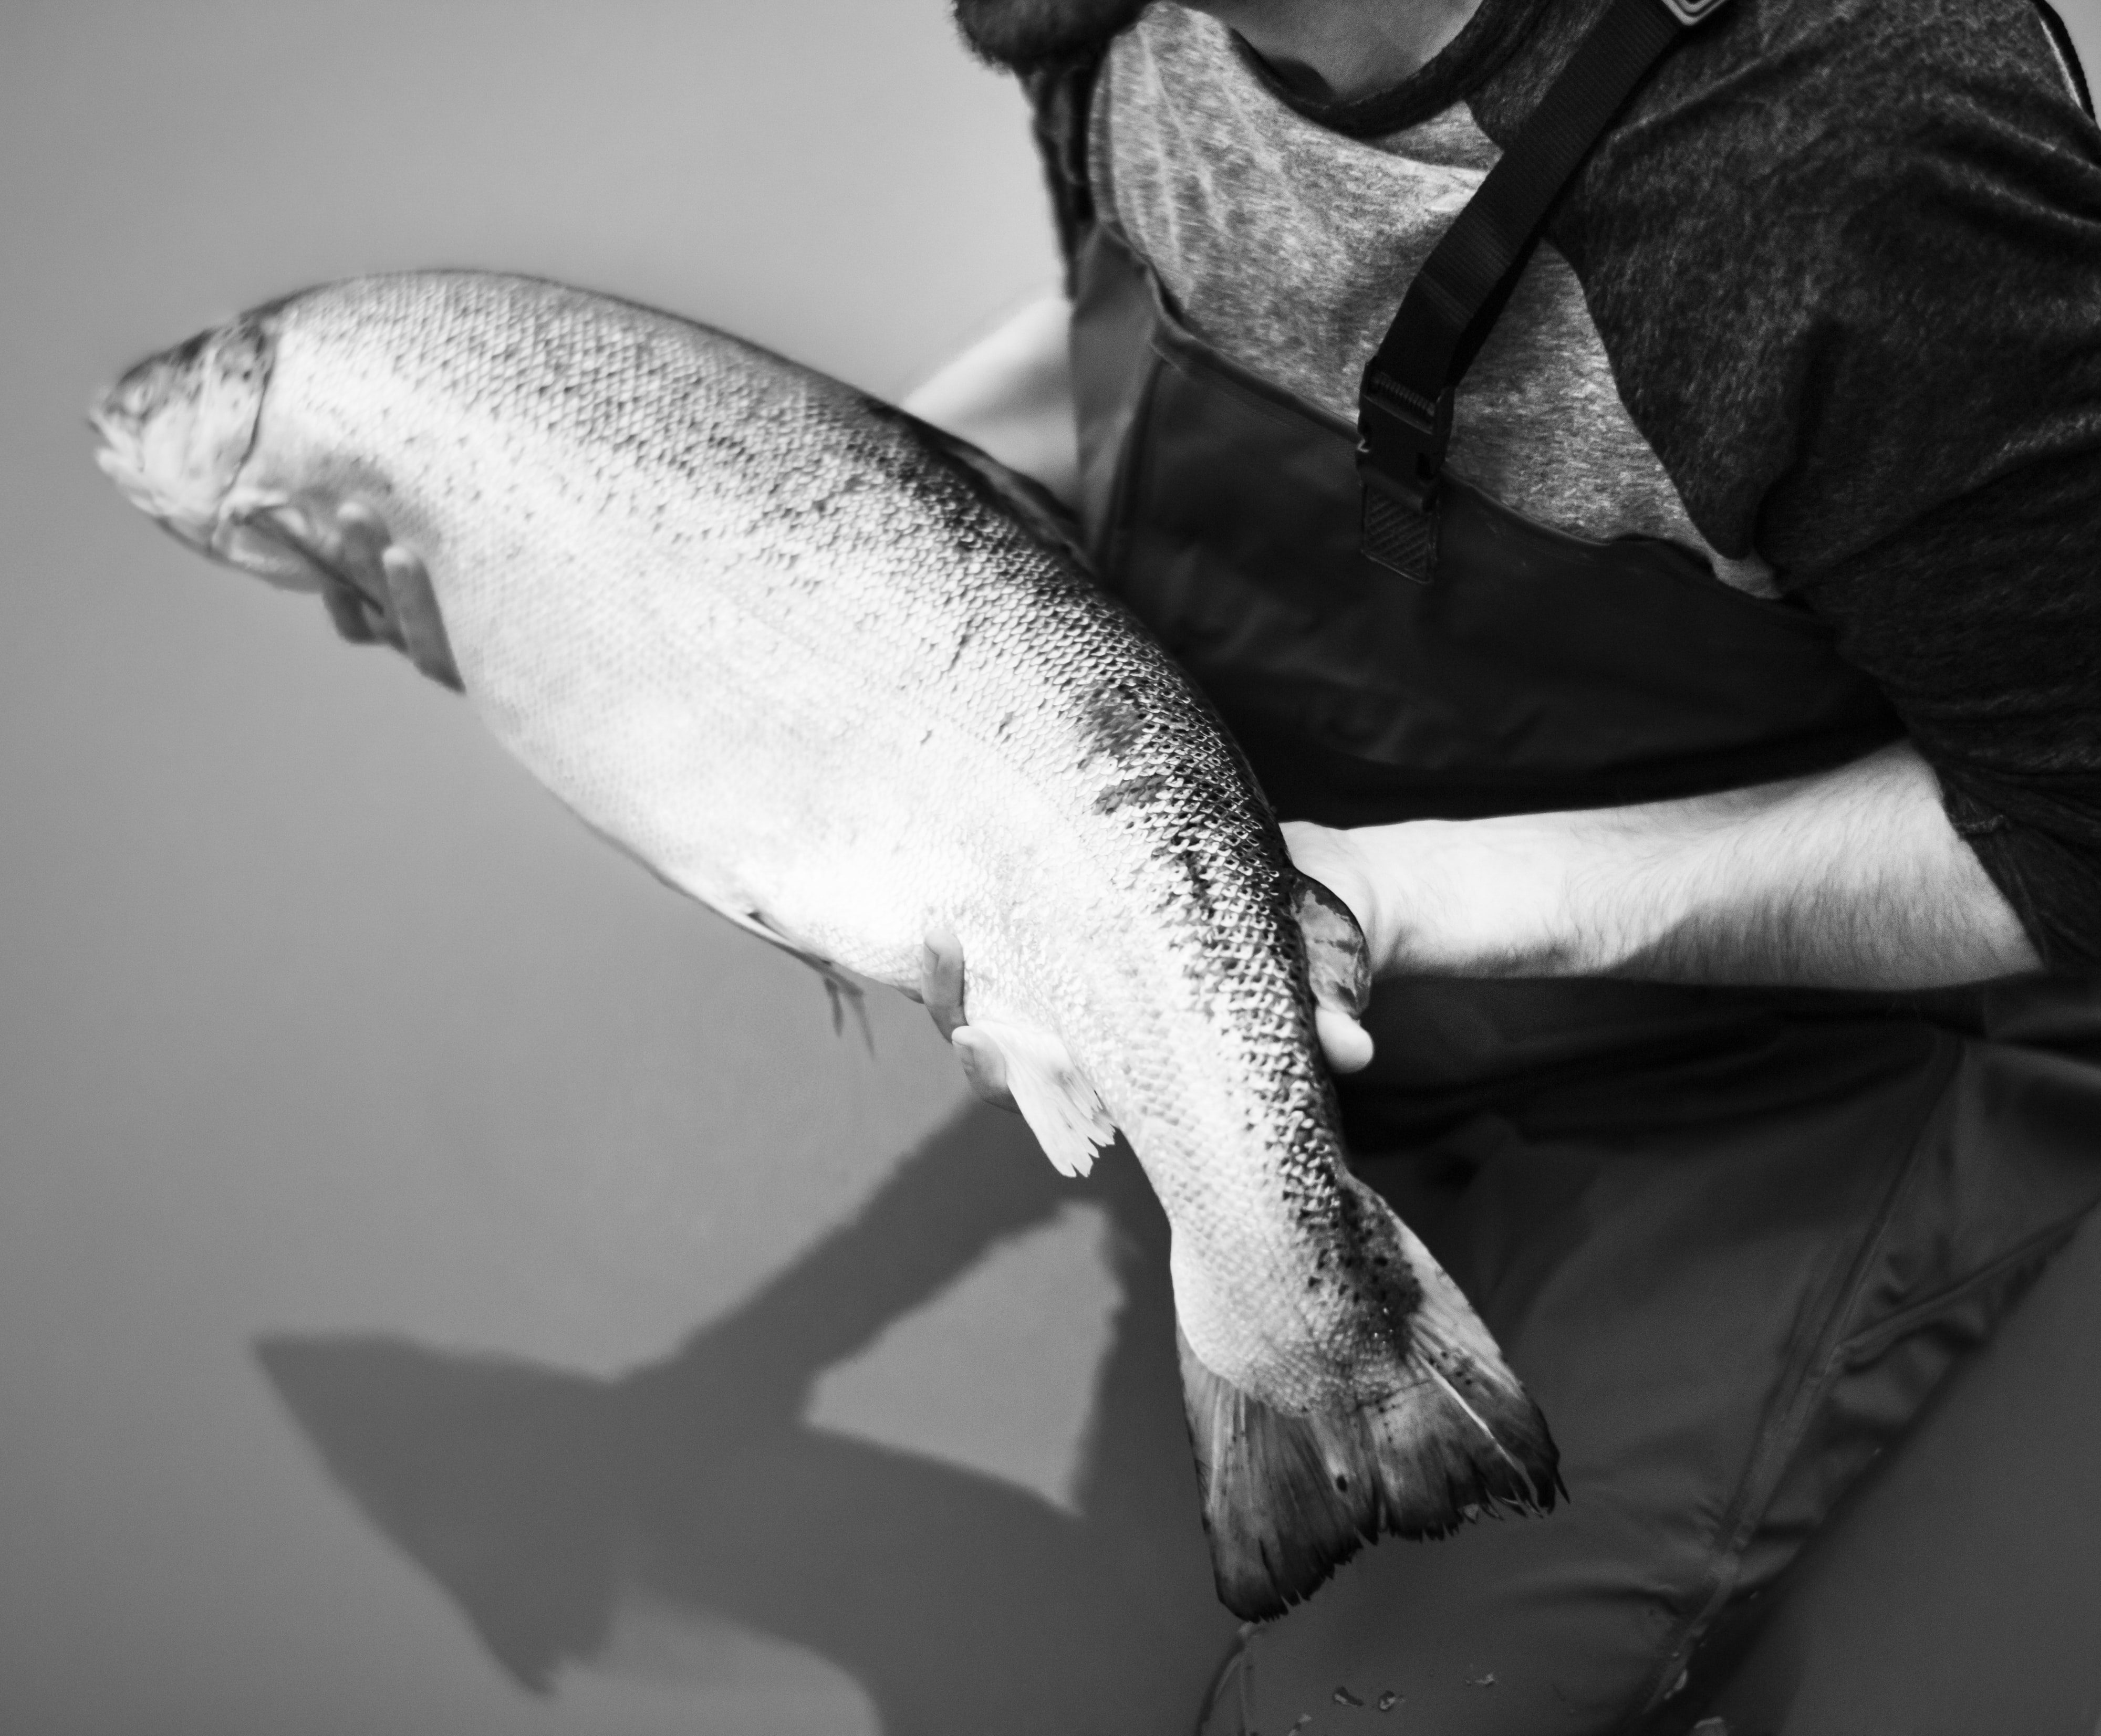 grayscale photo of person holding fish